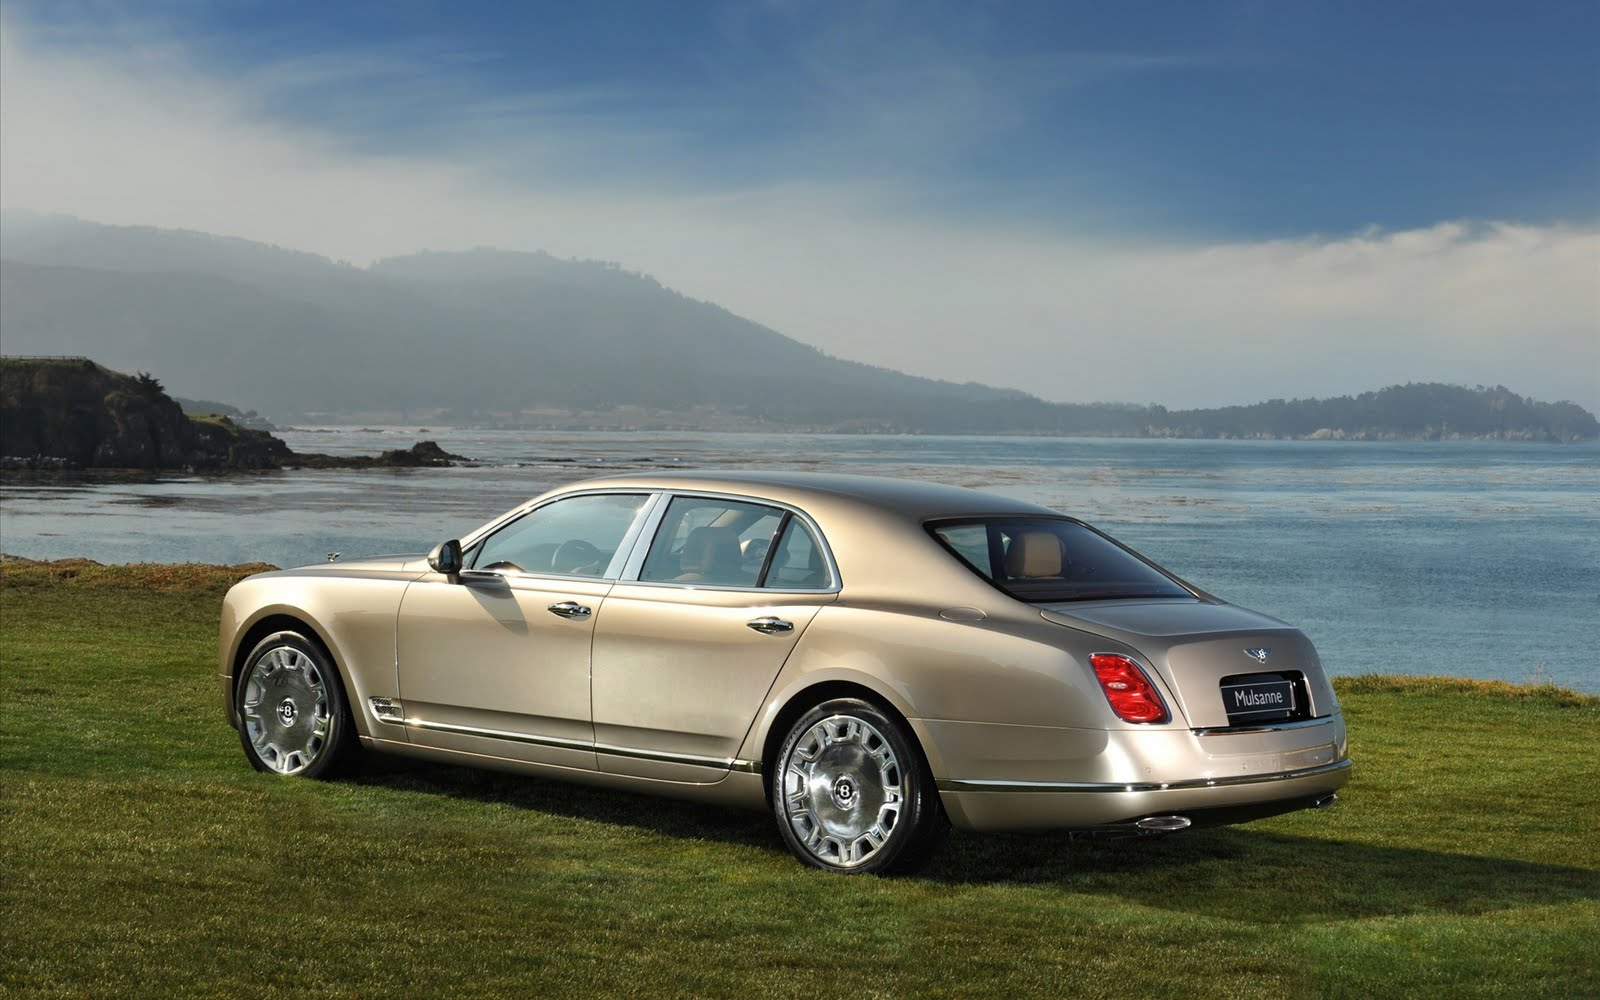 http://4.bp.blogspot.com/-QjrZy_3E4Ko/TnGV7HrhN7I/AAAAAAAALXw/tMY8KRuXFxg/s1600/latest-Bentley-High-Resolution-Wallpaper-1920x1200-background+%25281%2529.jpg